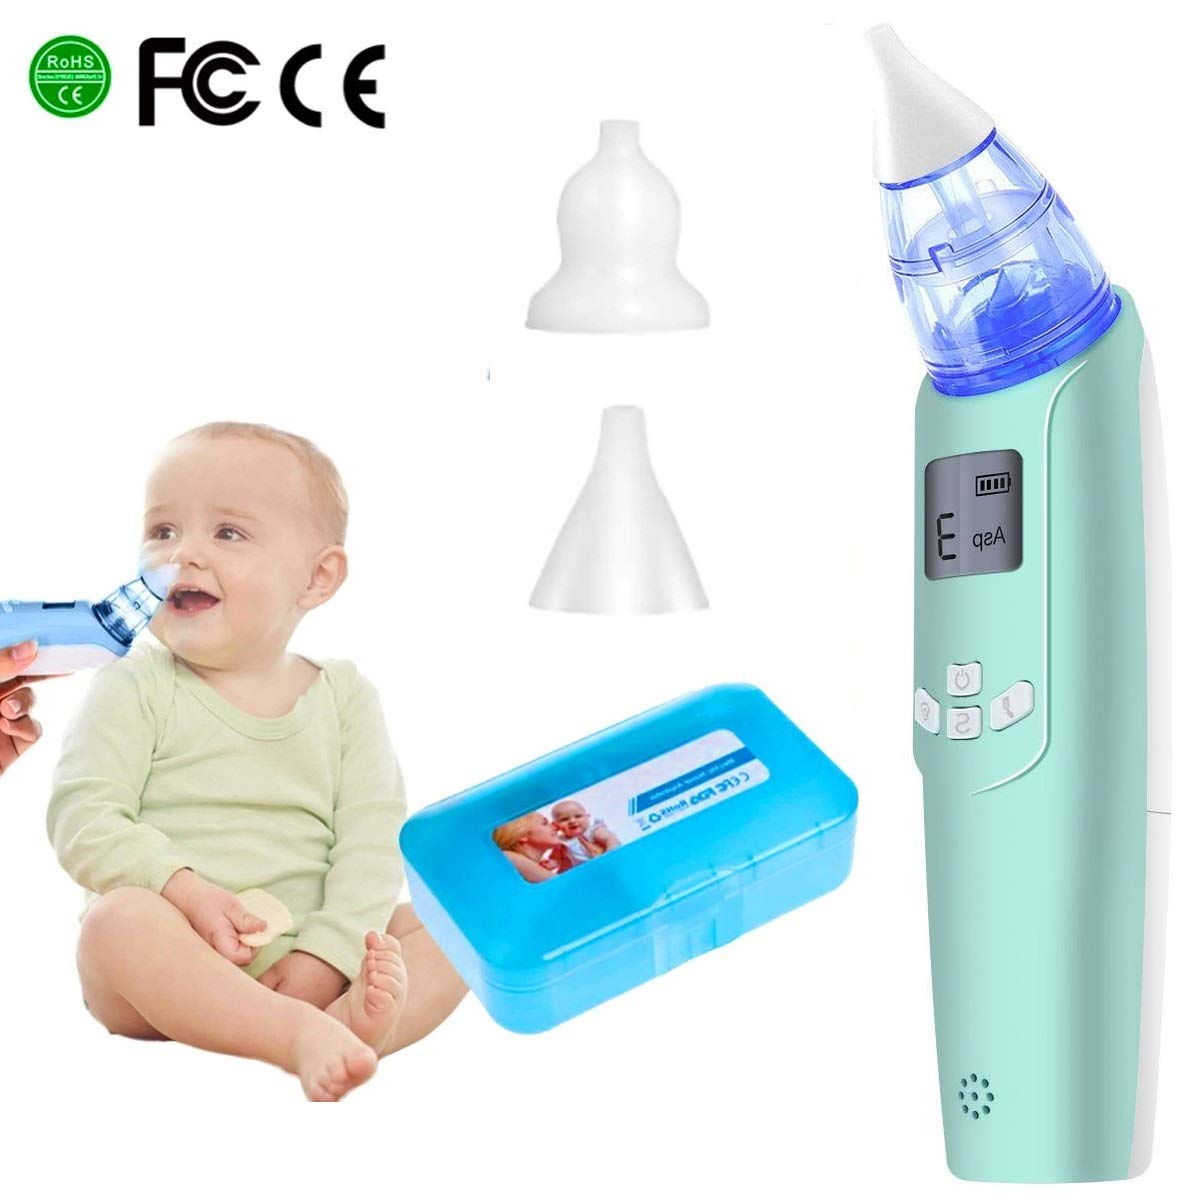 Electric Baby Nasal Aspirator - Battery Operated Nose Cleaner and Snot Sucker - Adjustable Settings and Reusable Tips with LCD Screen (Green) by Watolt